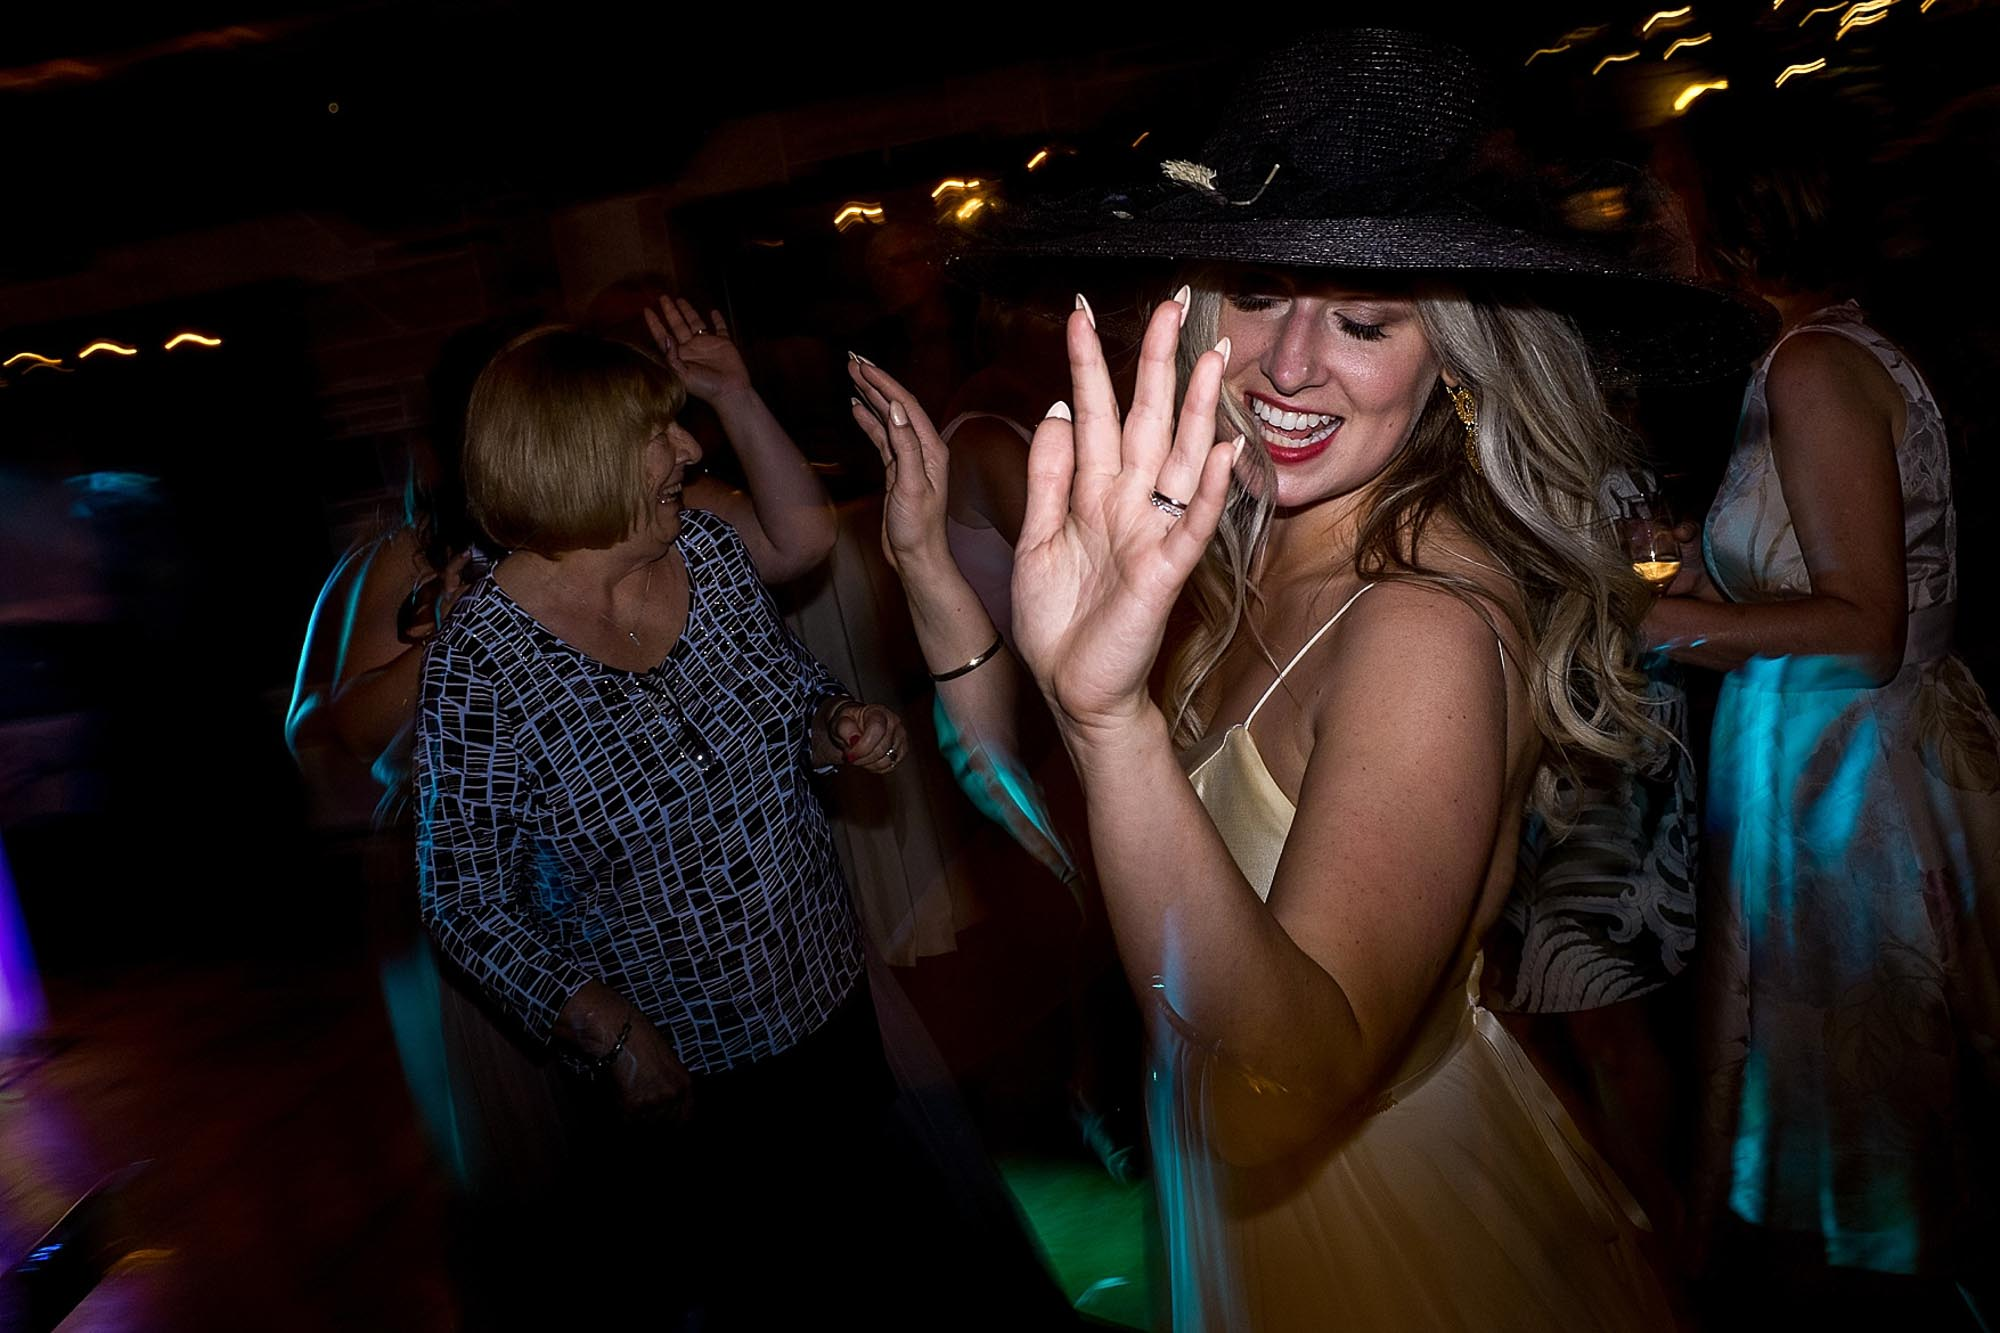 The bride dances during her reception at the Honsberger Estate in Niagara on the lake.